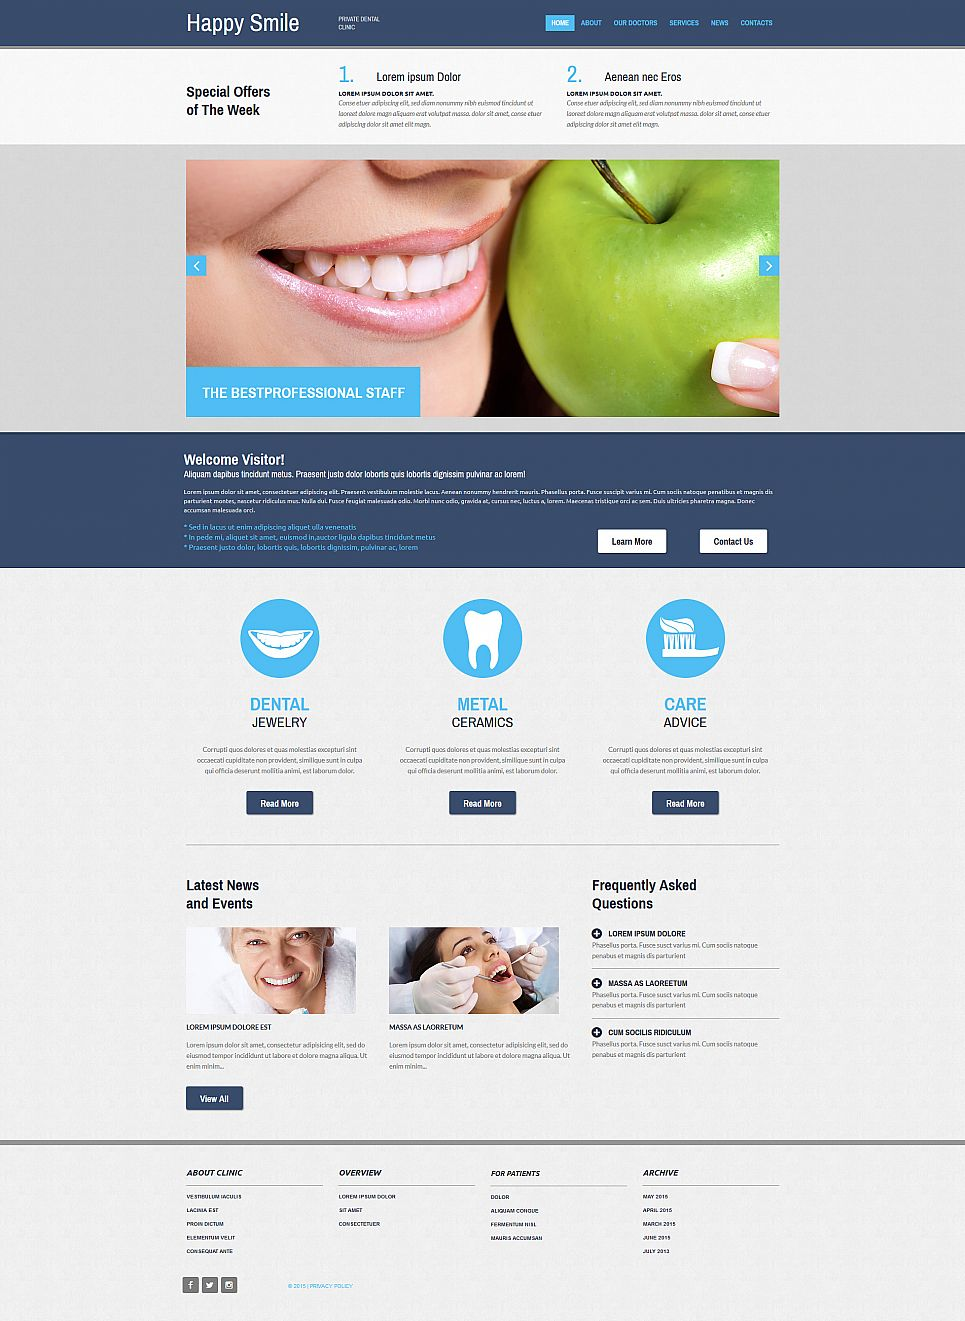 Dental Web Page Design - image